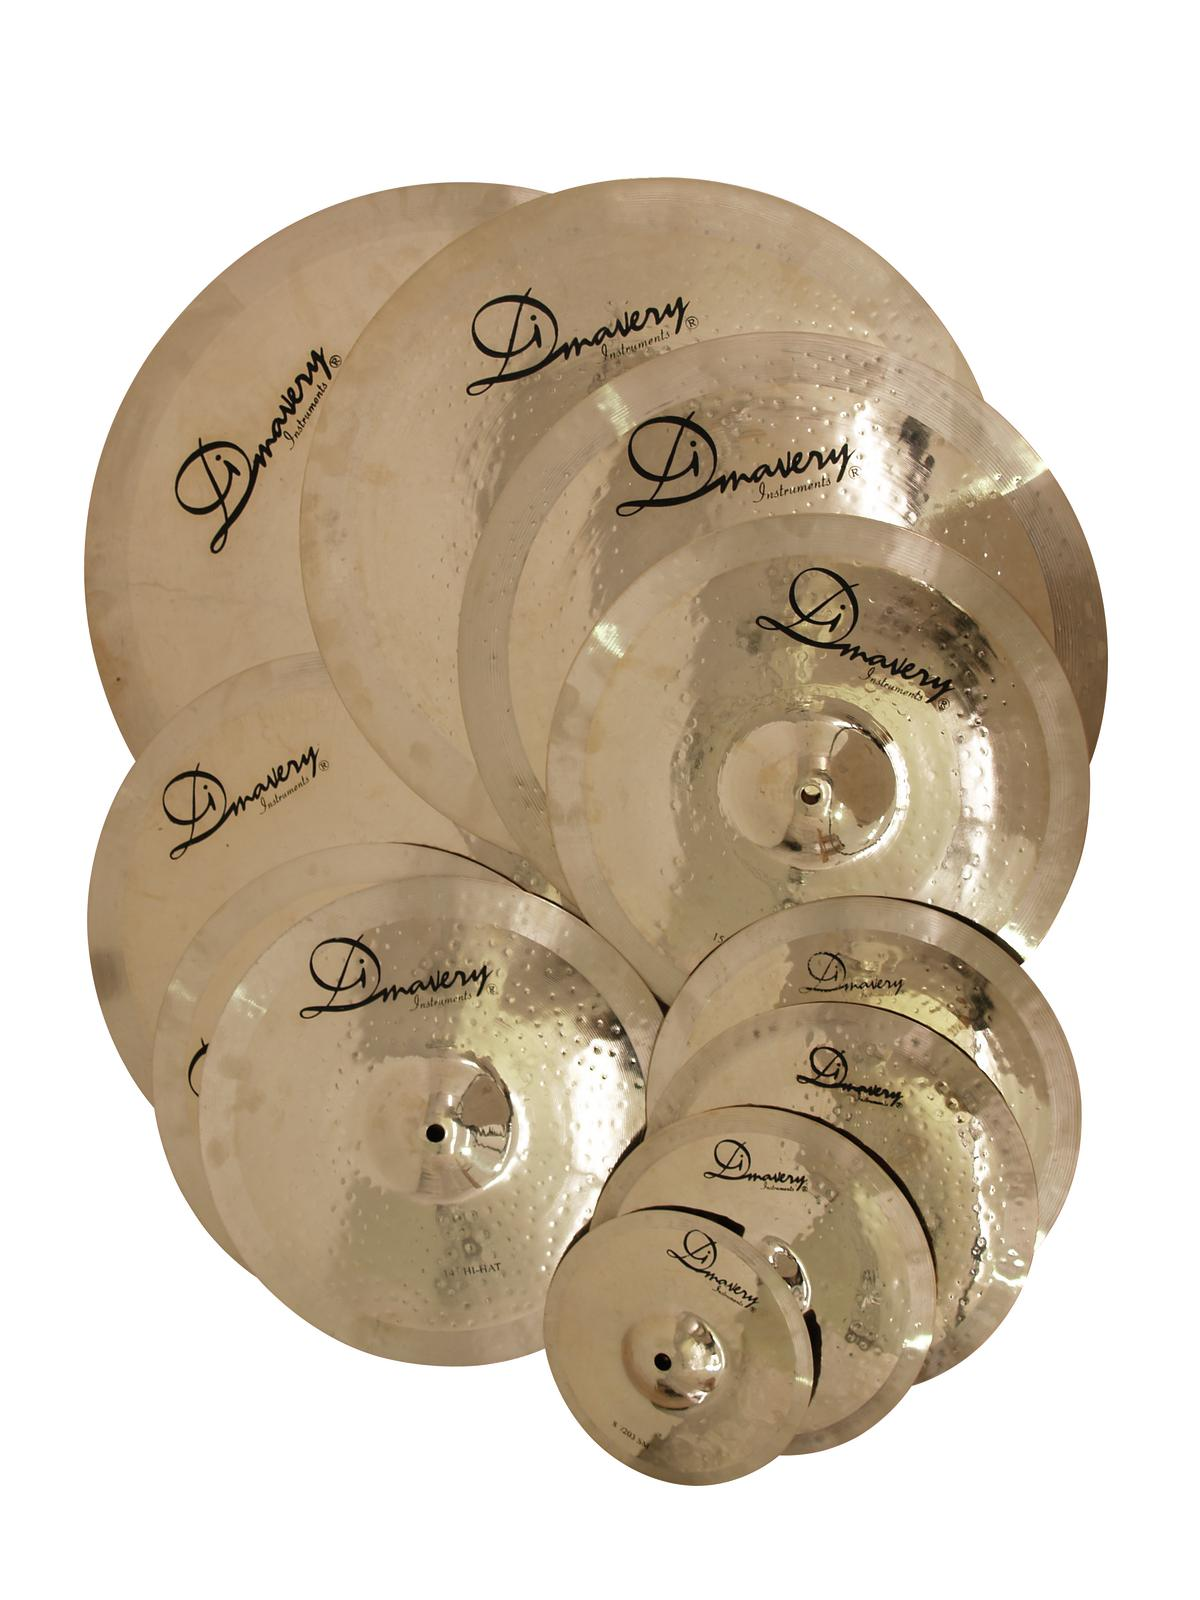 Piatto Splash Drum Cymbal Per